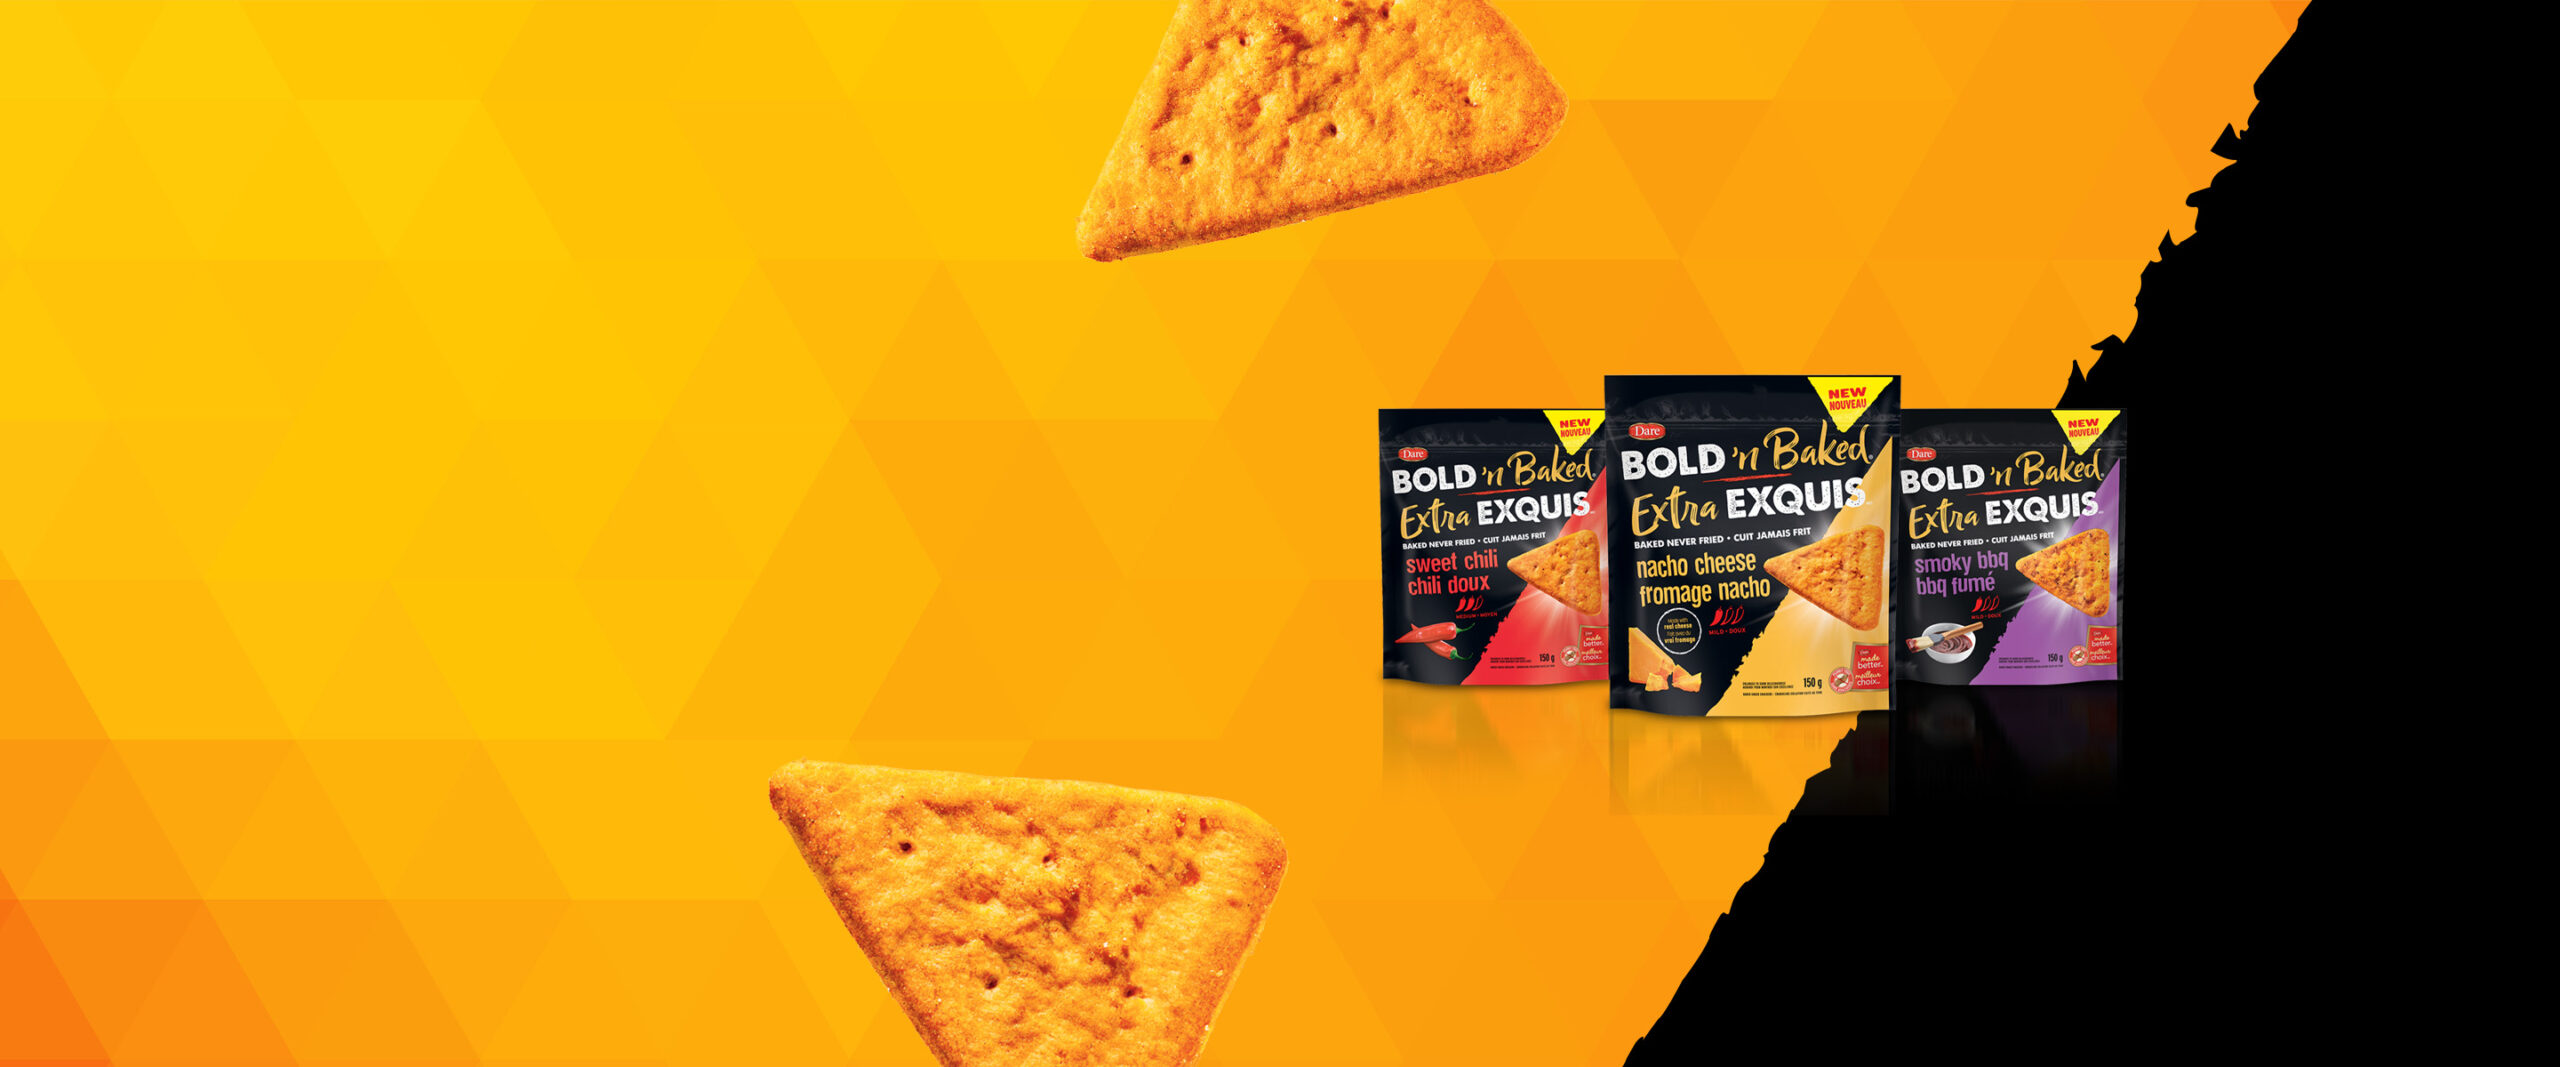 Dare Launches Bold 'n Baked